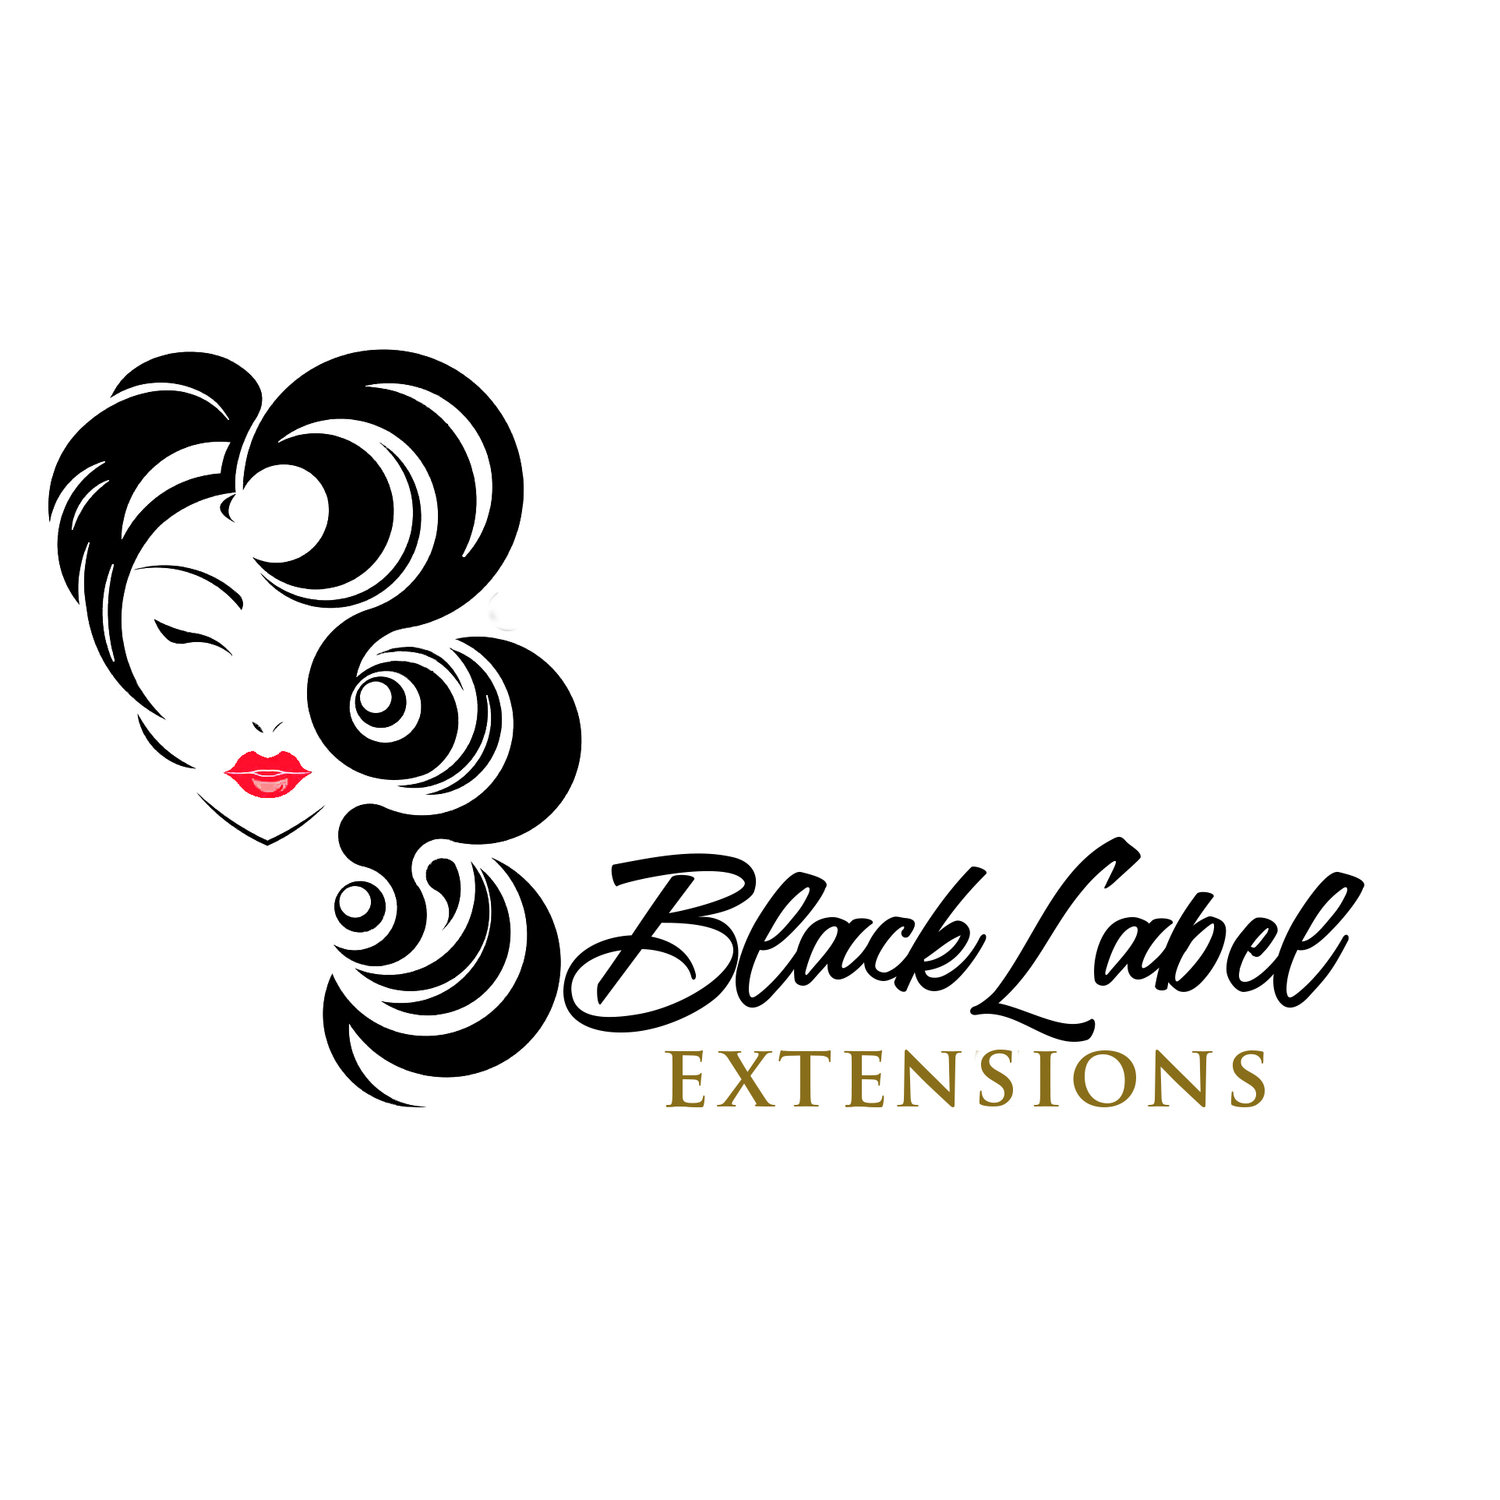 Black Label Extensions